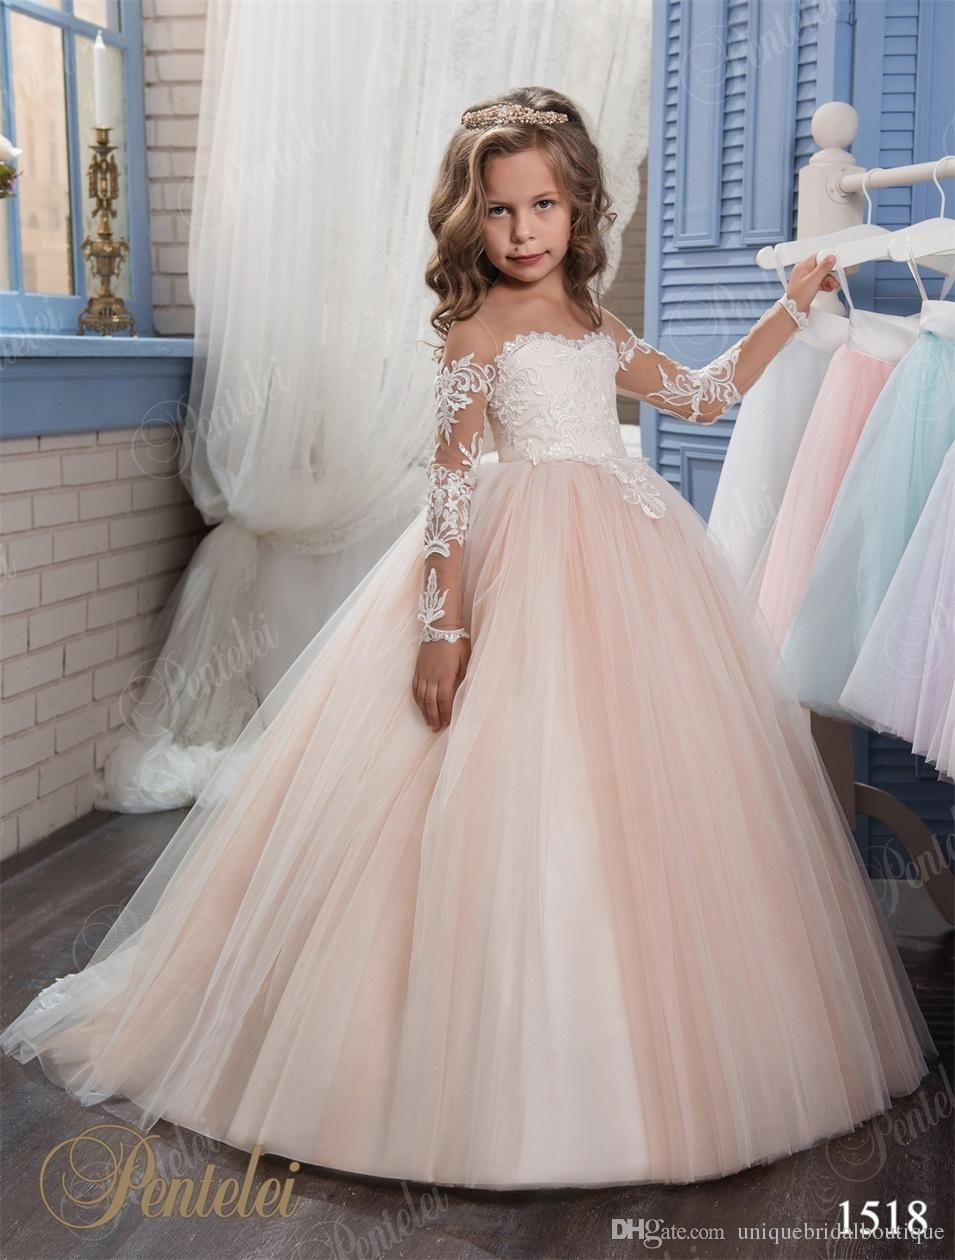 Kids Wedding Dresses Pentelei With Illusion Long Sleeves And